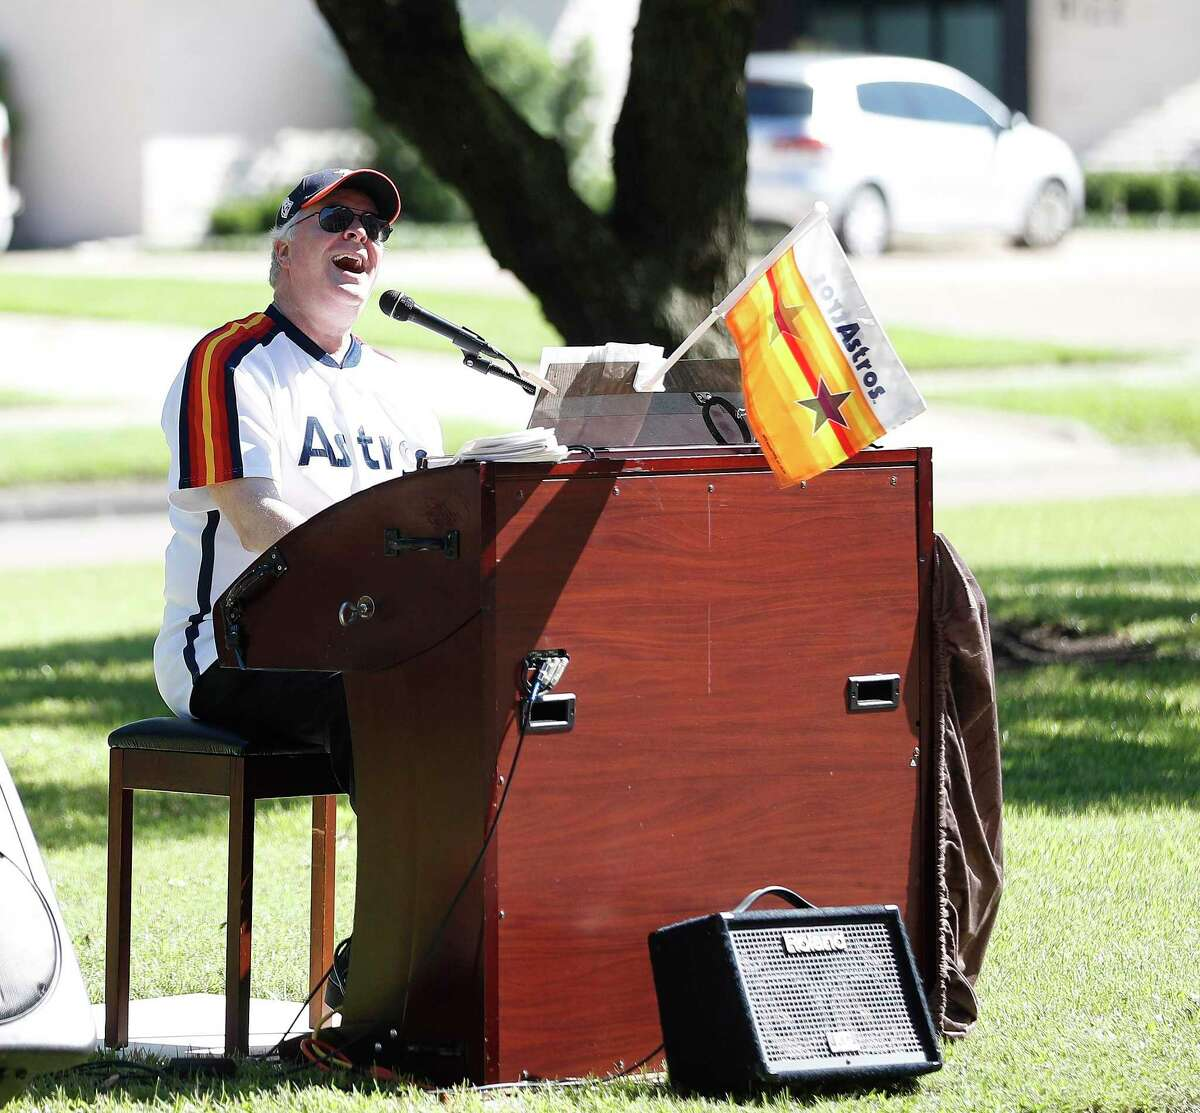 Former Astros organist, Jim Connors, sings and plays the organ as he presented his 7th Inning Stretch Show from the esplanade on North Braeswood Boulevard, to six floors of cooped-up, seniors at the Village of Meyerland, in Houston, Thursday, April 30, 2020.